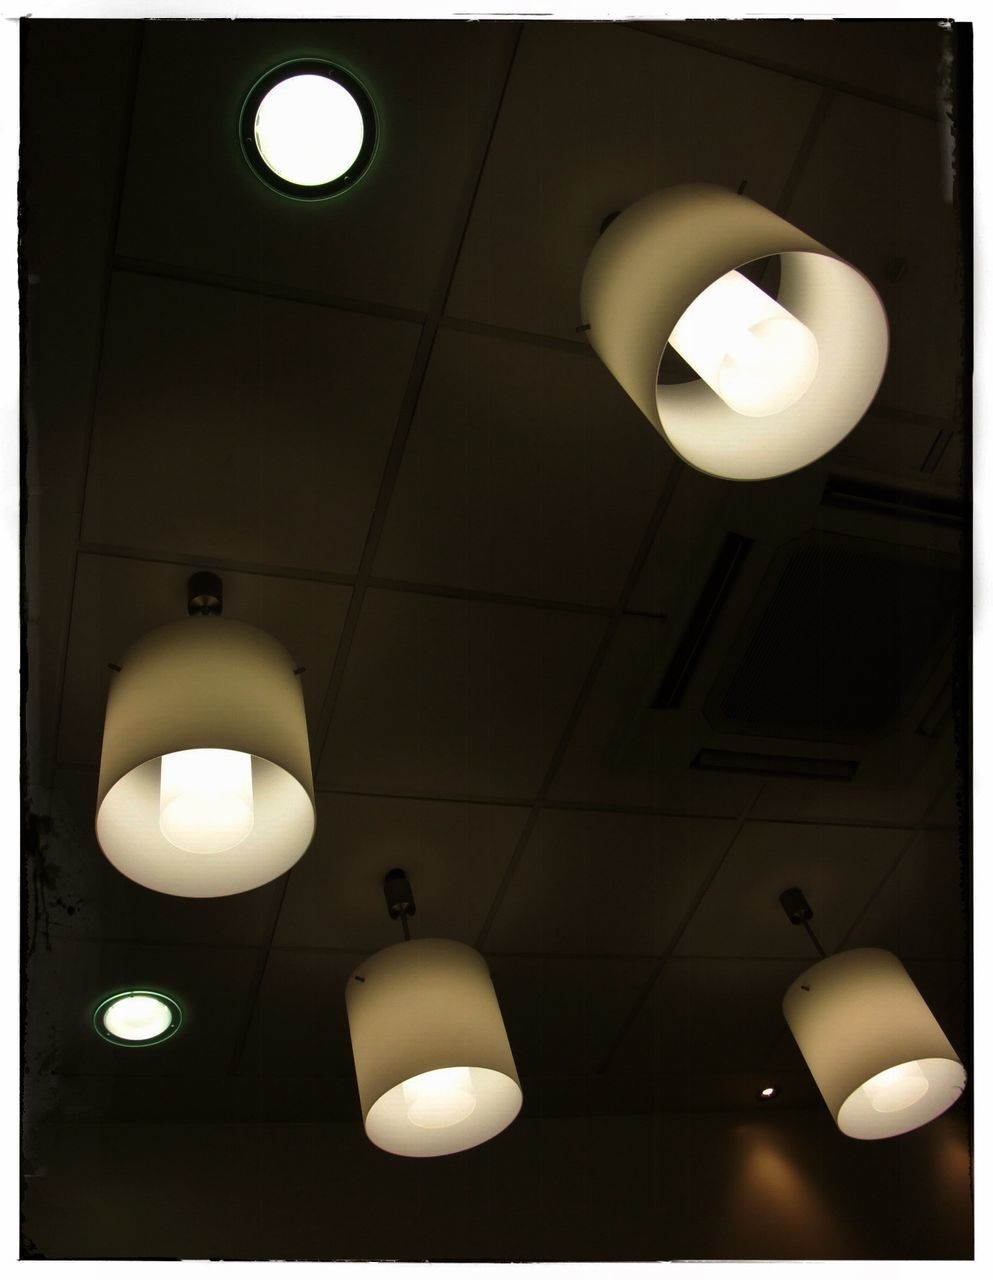 illuminated, ceiling, lighting equipment, indoors, hanging, low angle view, no people, electricity, light bulb